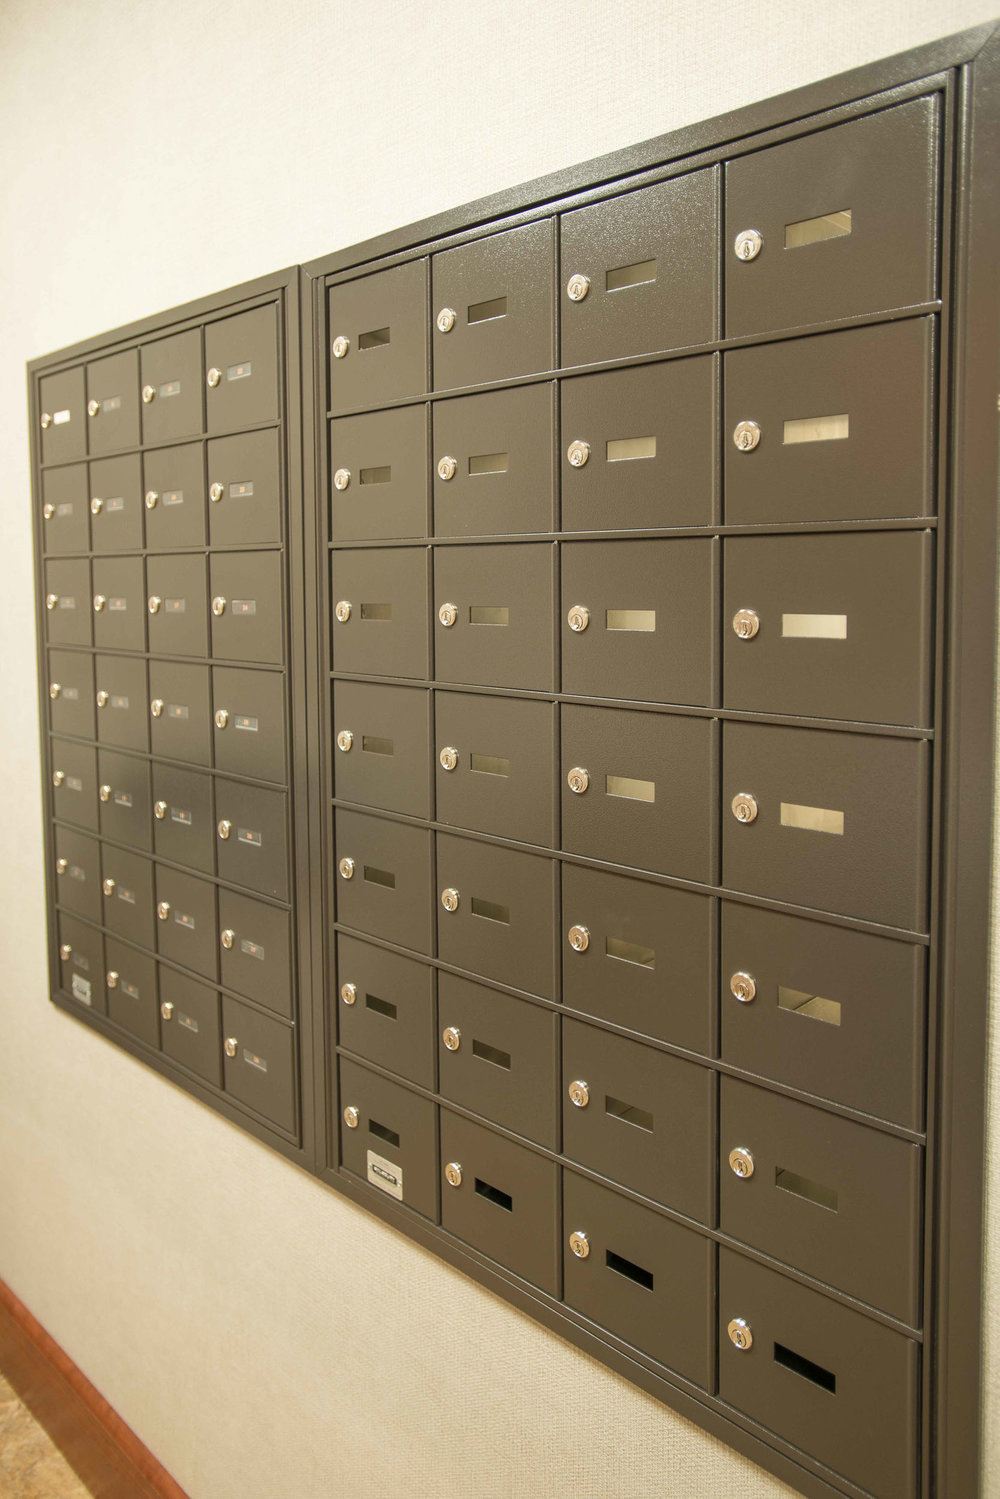 Symphony Mailboxes-7624.jpg